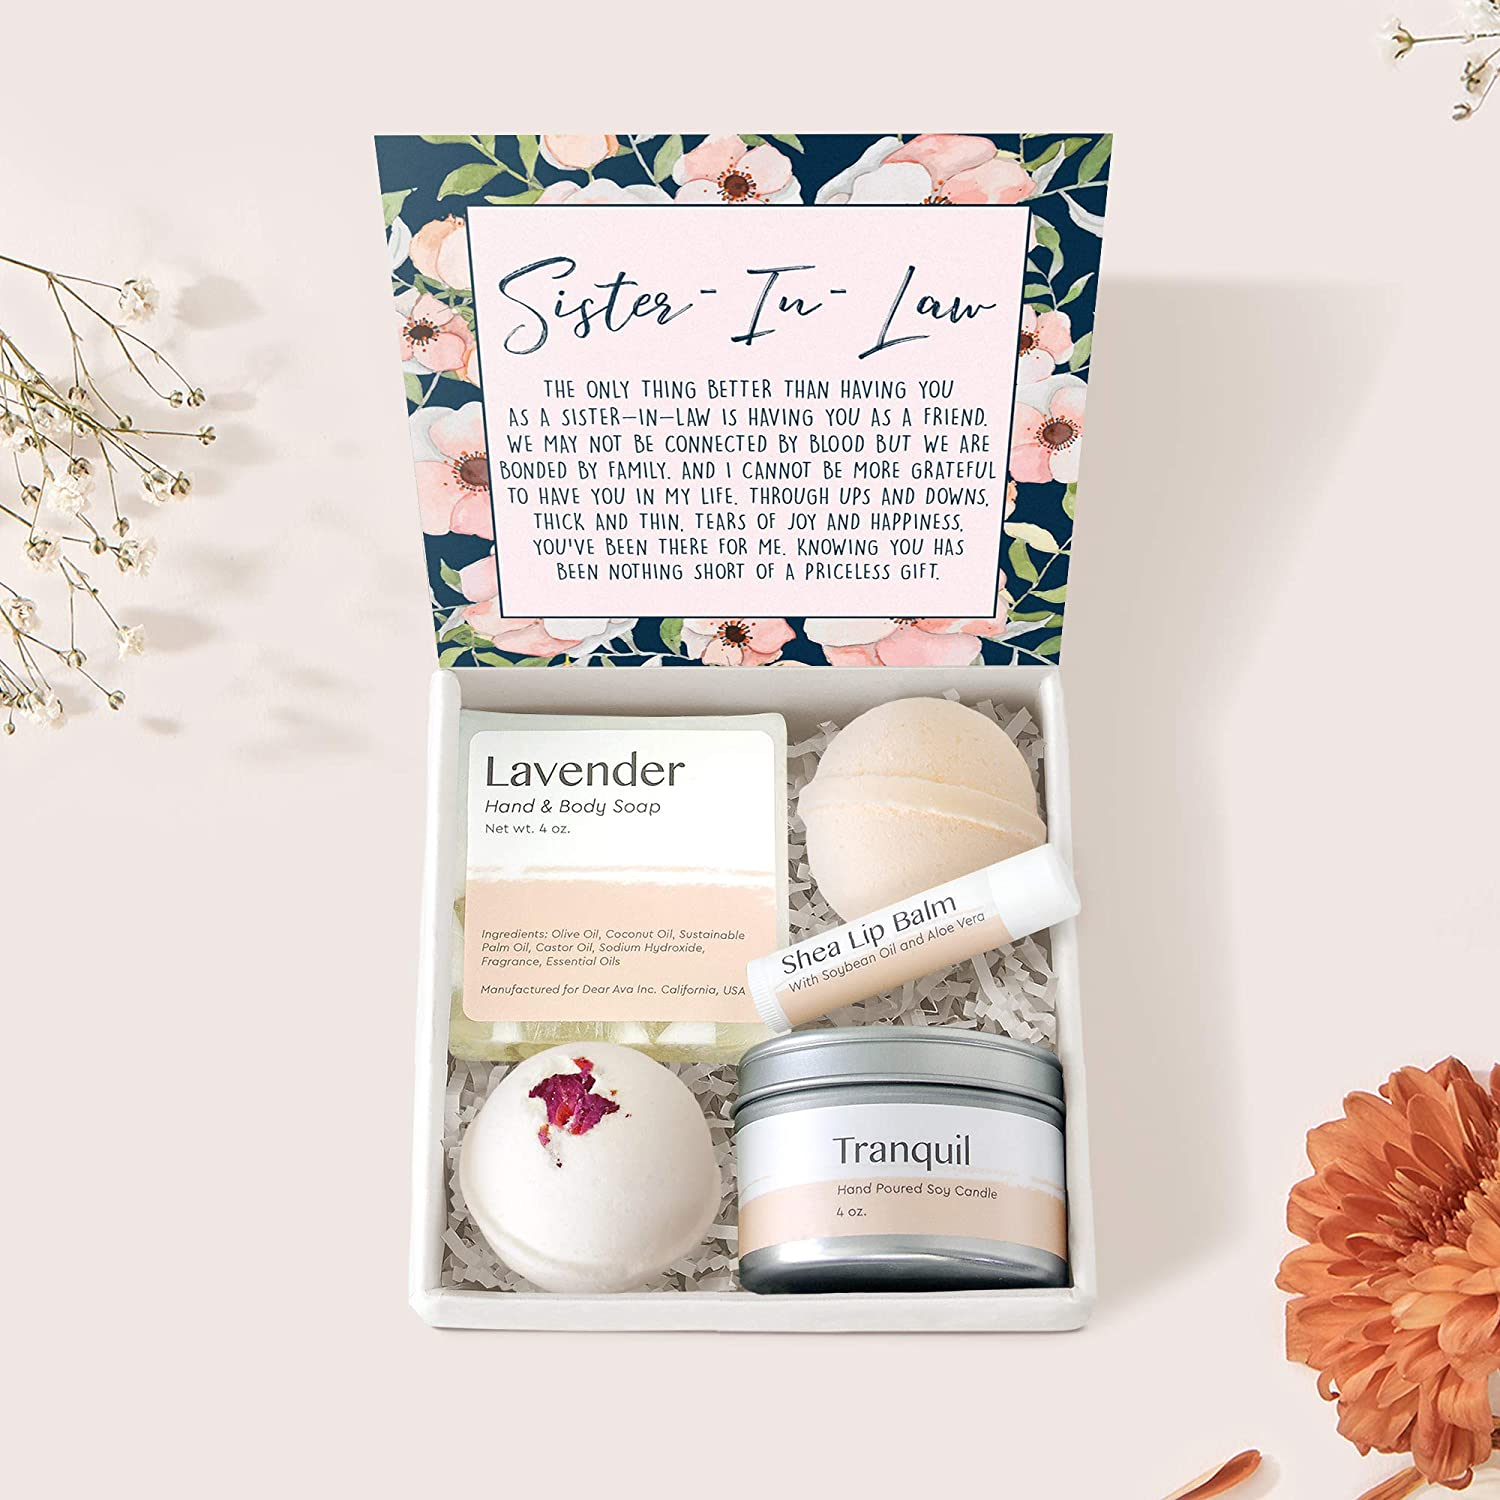 Sister-In-Law Gift Box Set - Heartfelt Card & Spa gift box for Birthday, Holidays